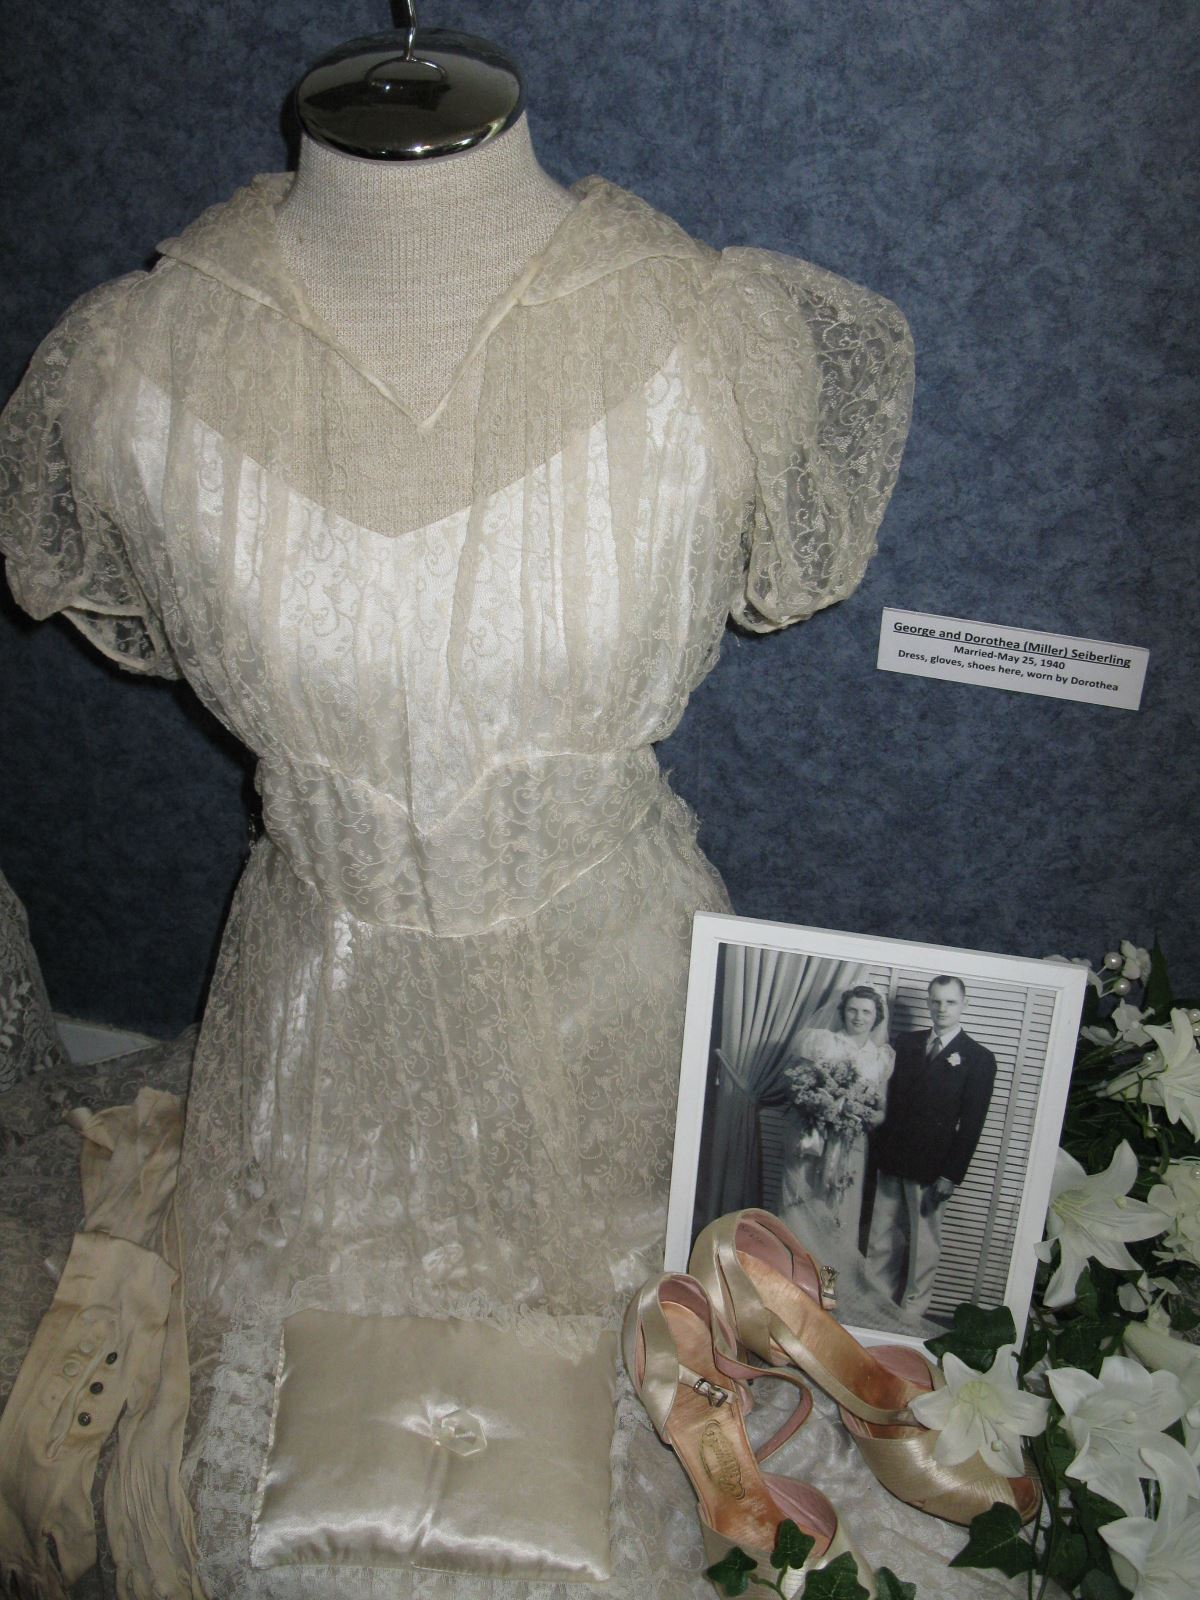 Vintage wedding dress on display with black and white photograph